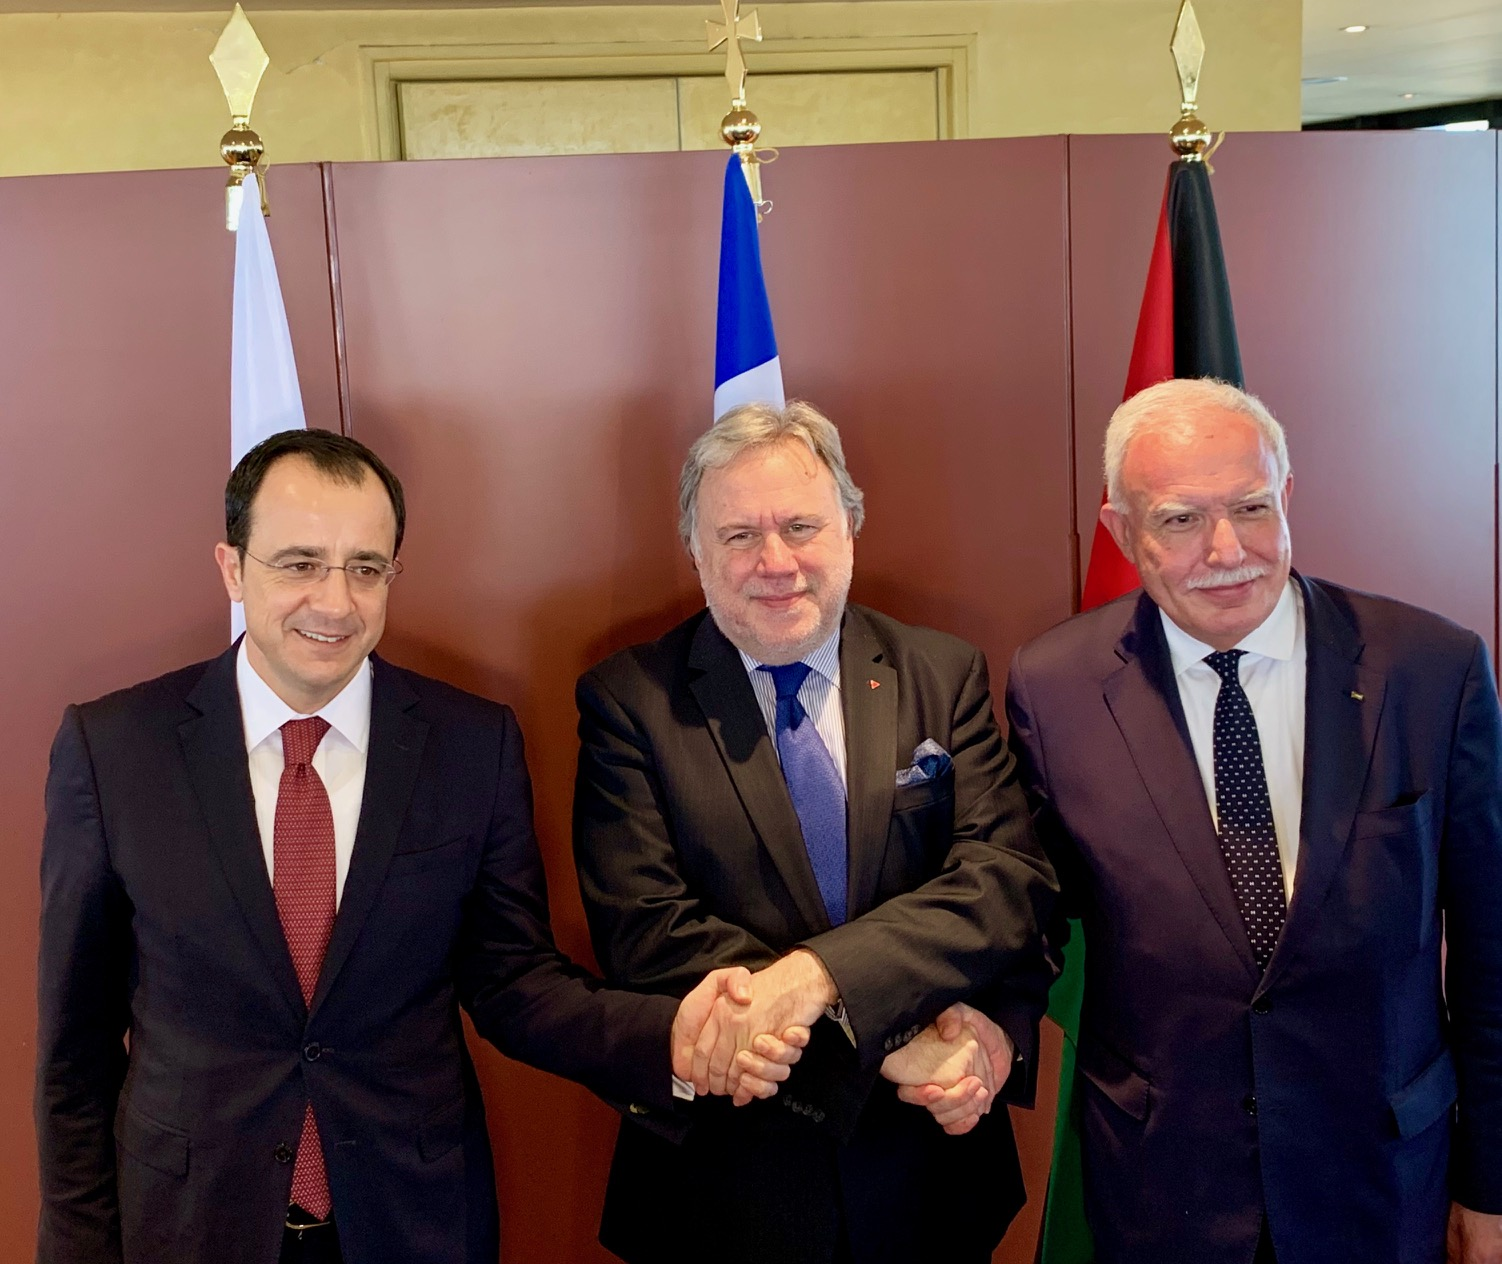 Joint communiqué issued after the Trilateral Greece Cyprus Palestine